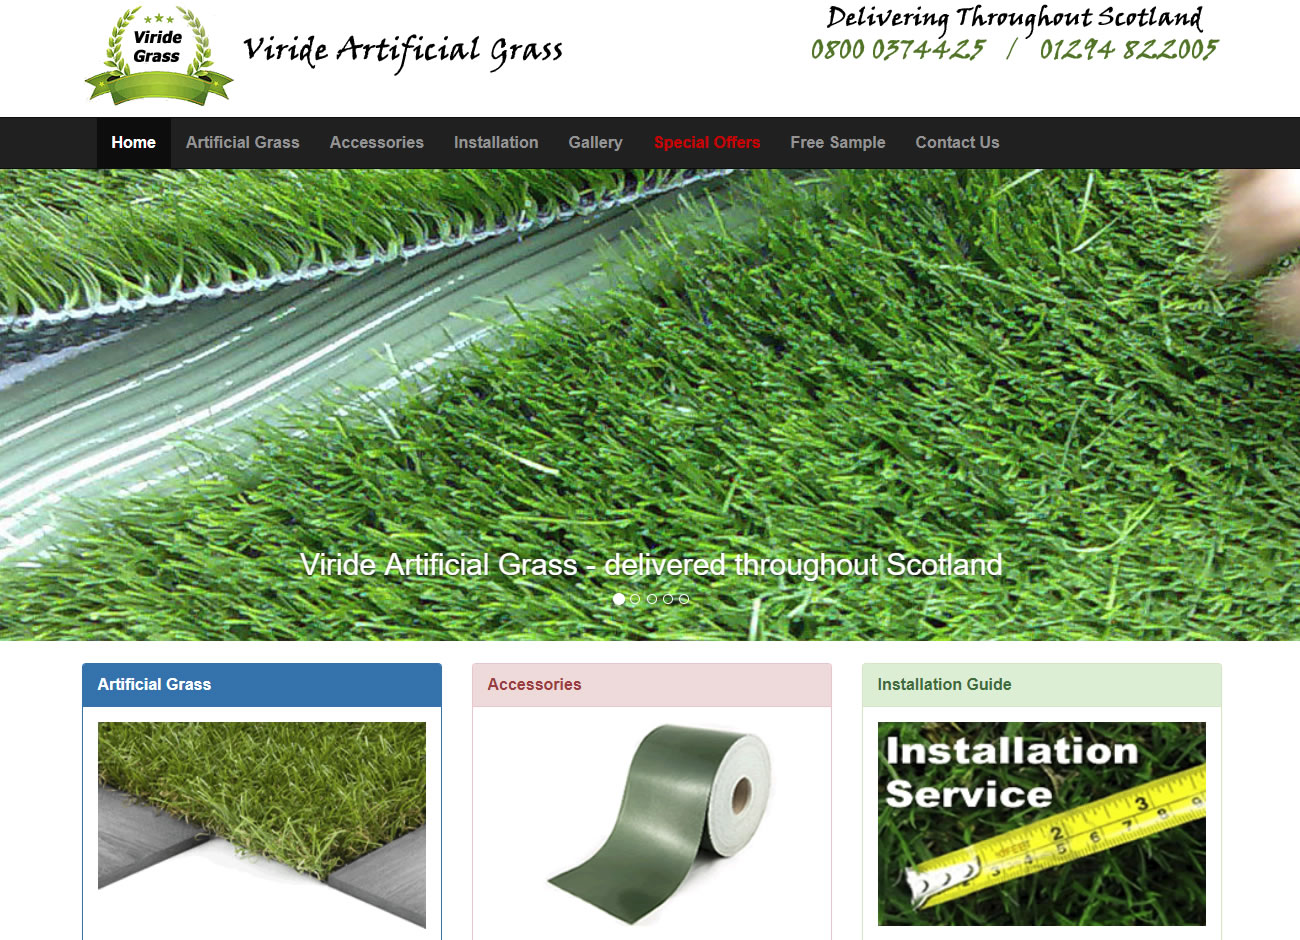 Viride Artificial Grass - Website Design Ayrshire